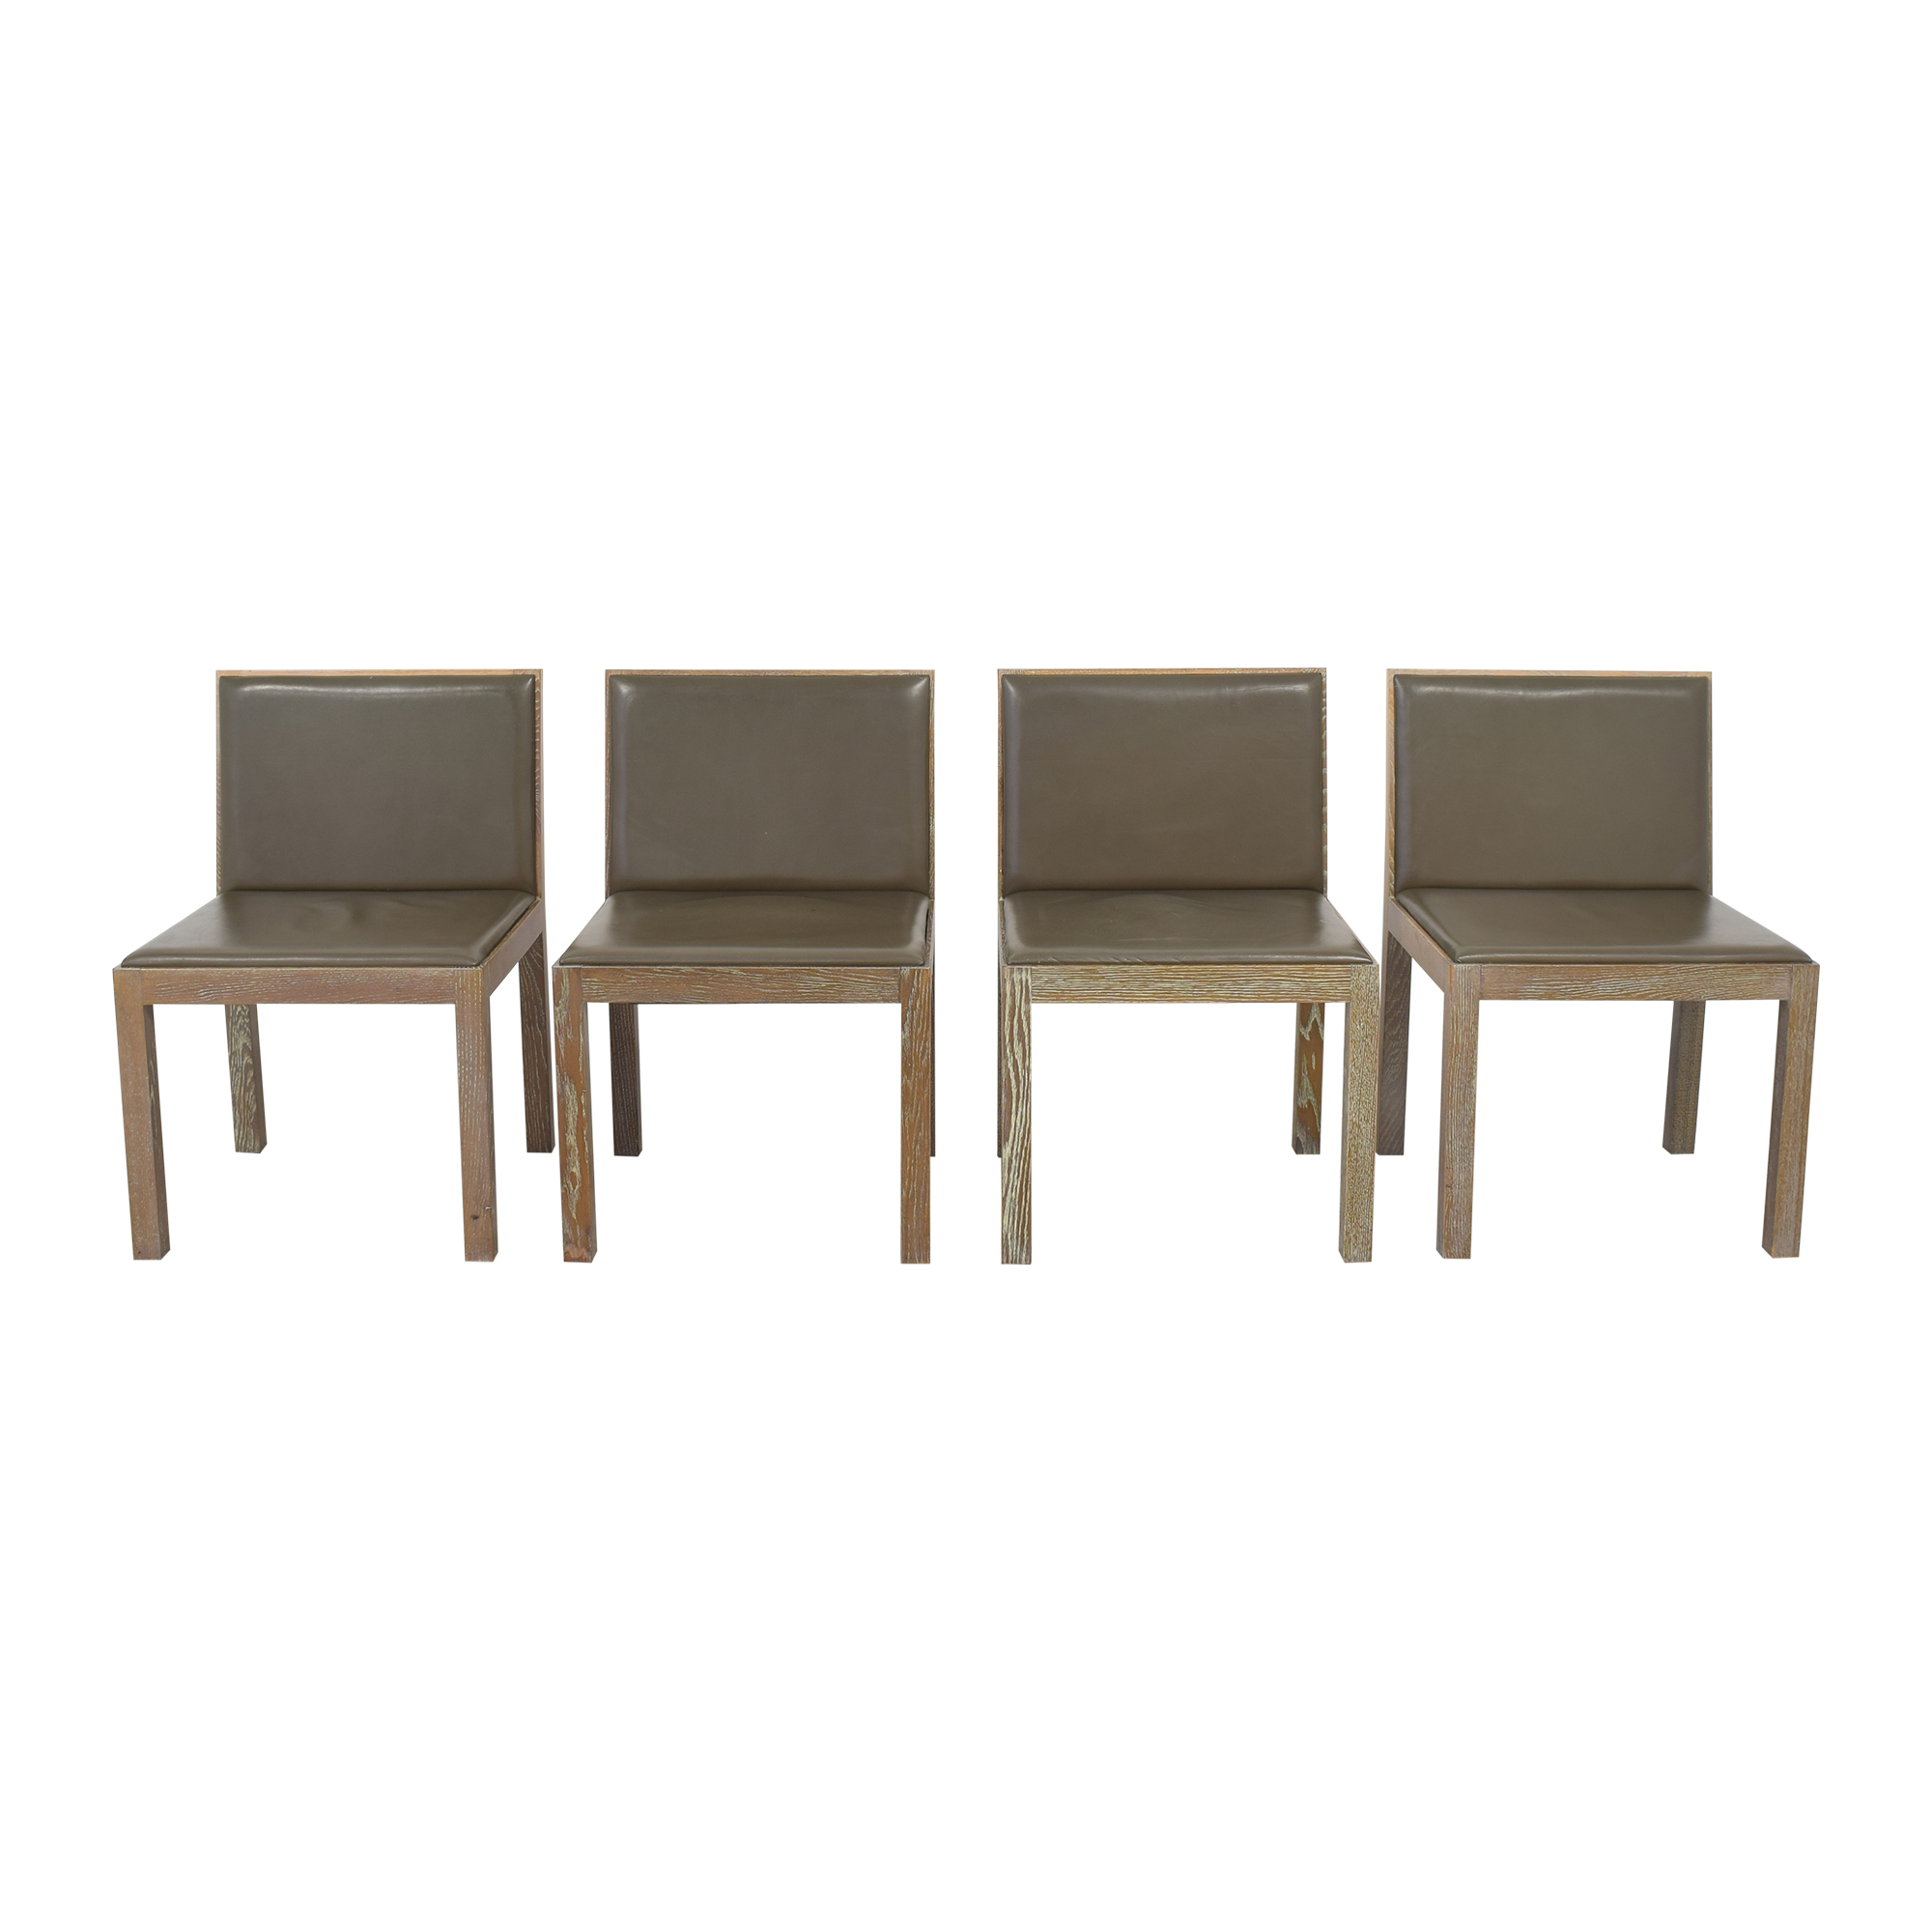 Armani Casa Armani Casa Dining Chairs used